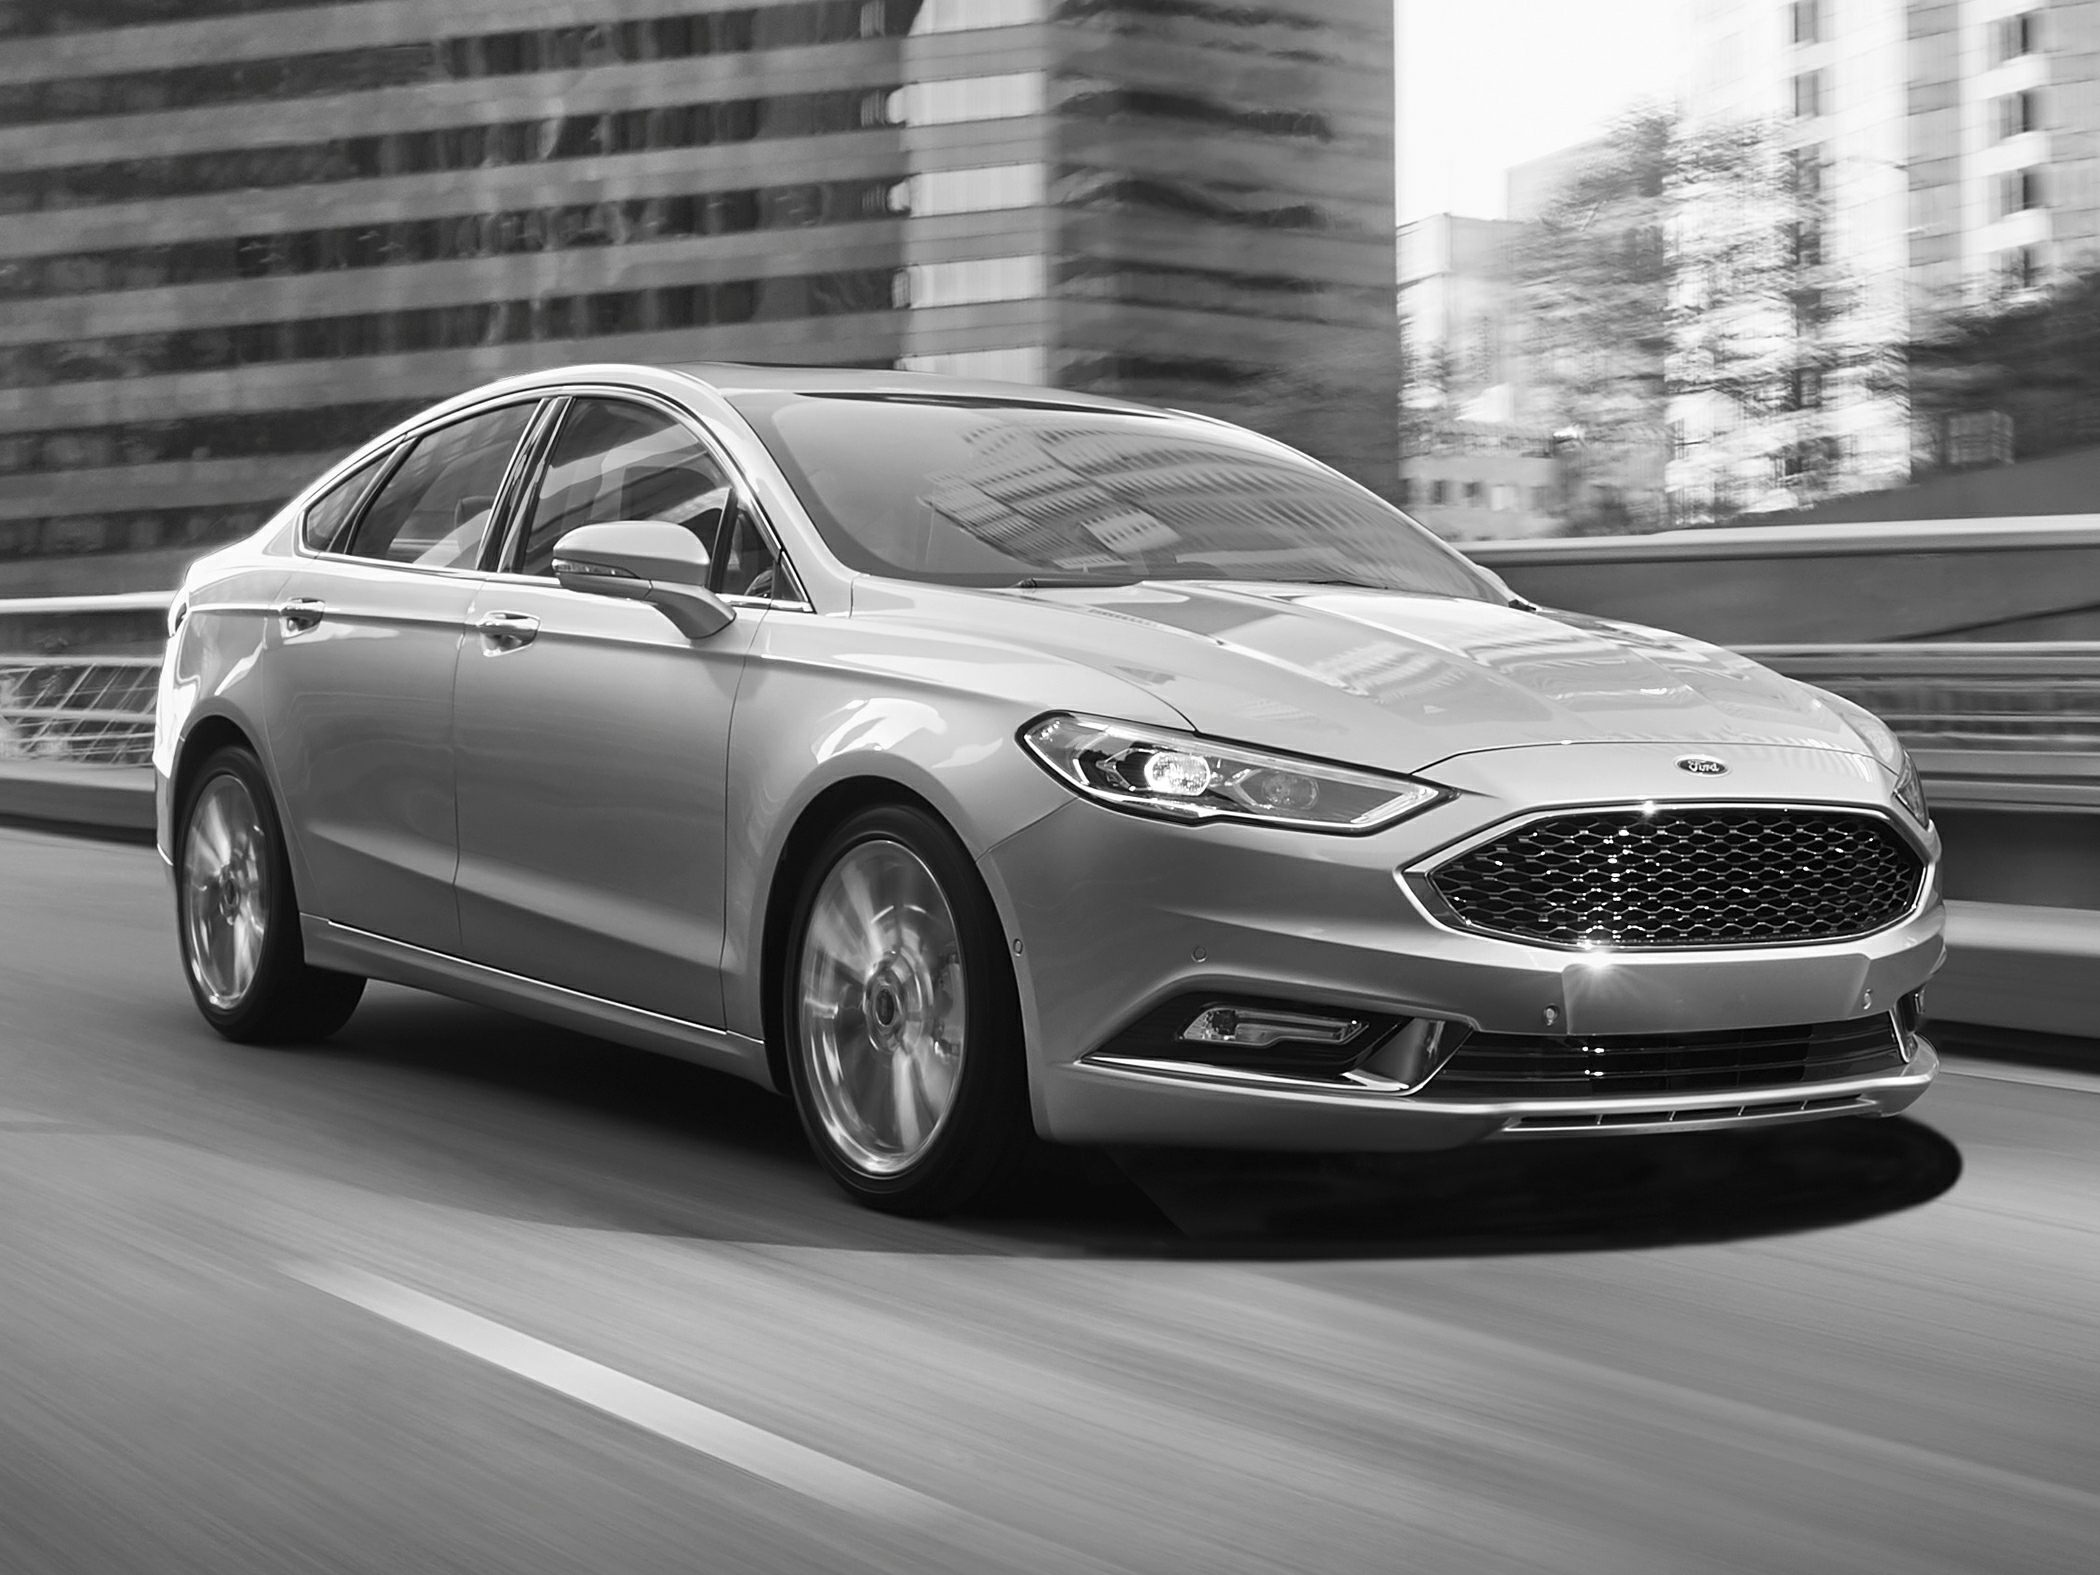 Ford Fusion Hybrid For Sale >> EPA to investigate Ford C-Max, Fusion fuel economy - Autoblog